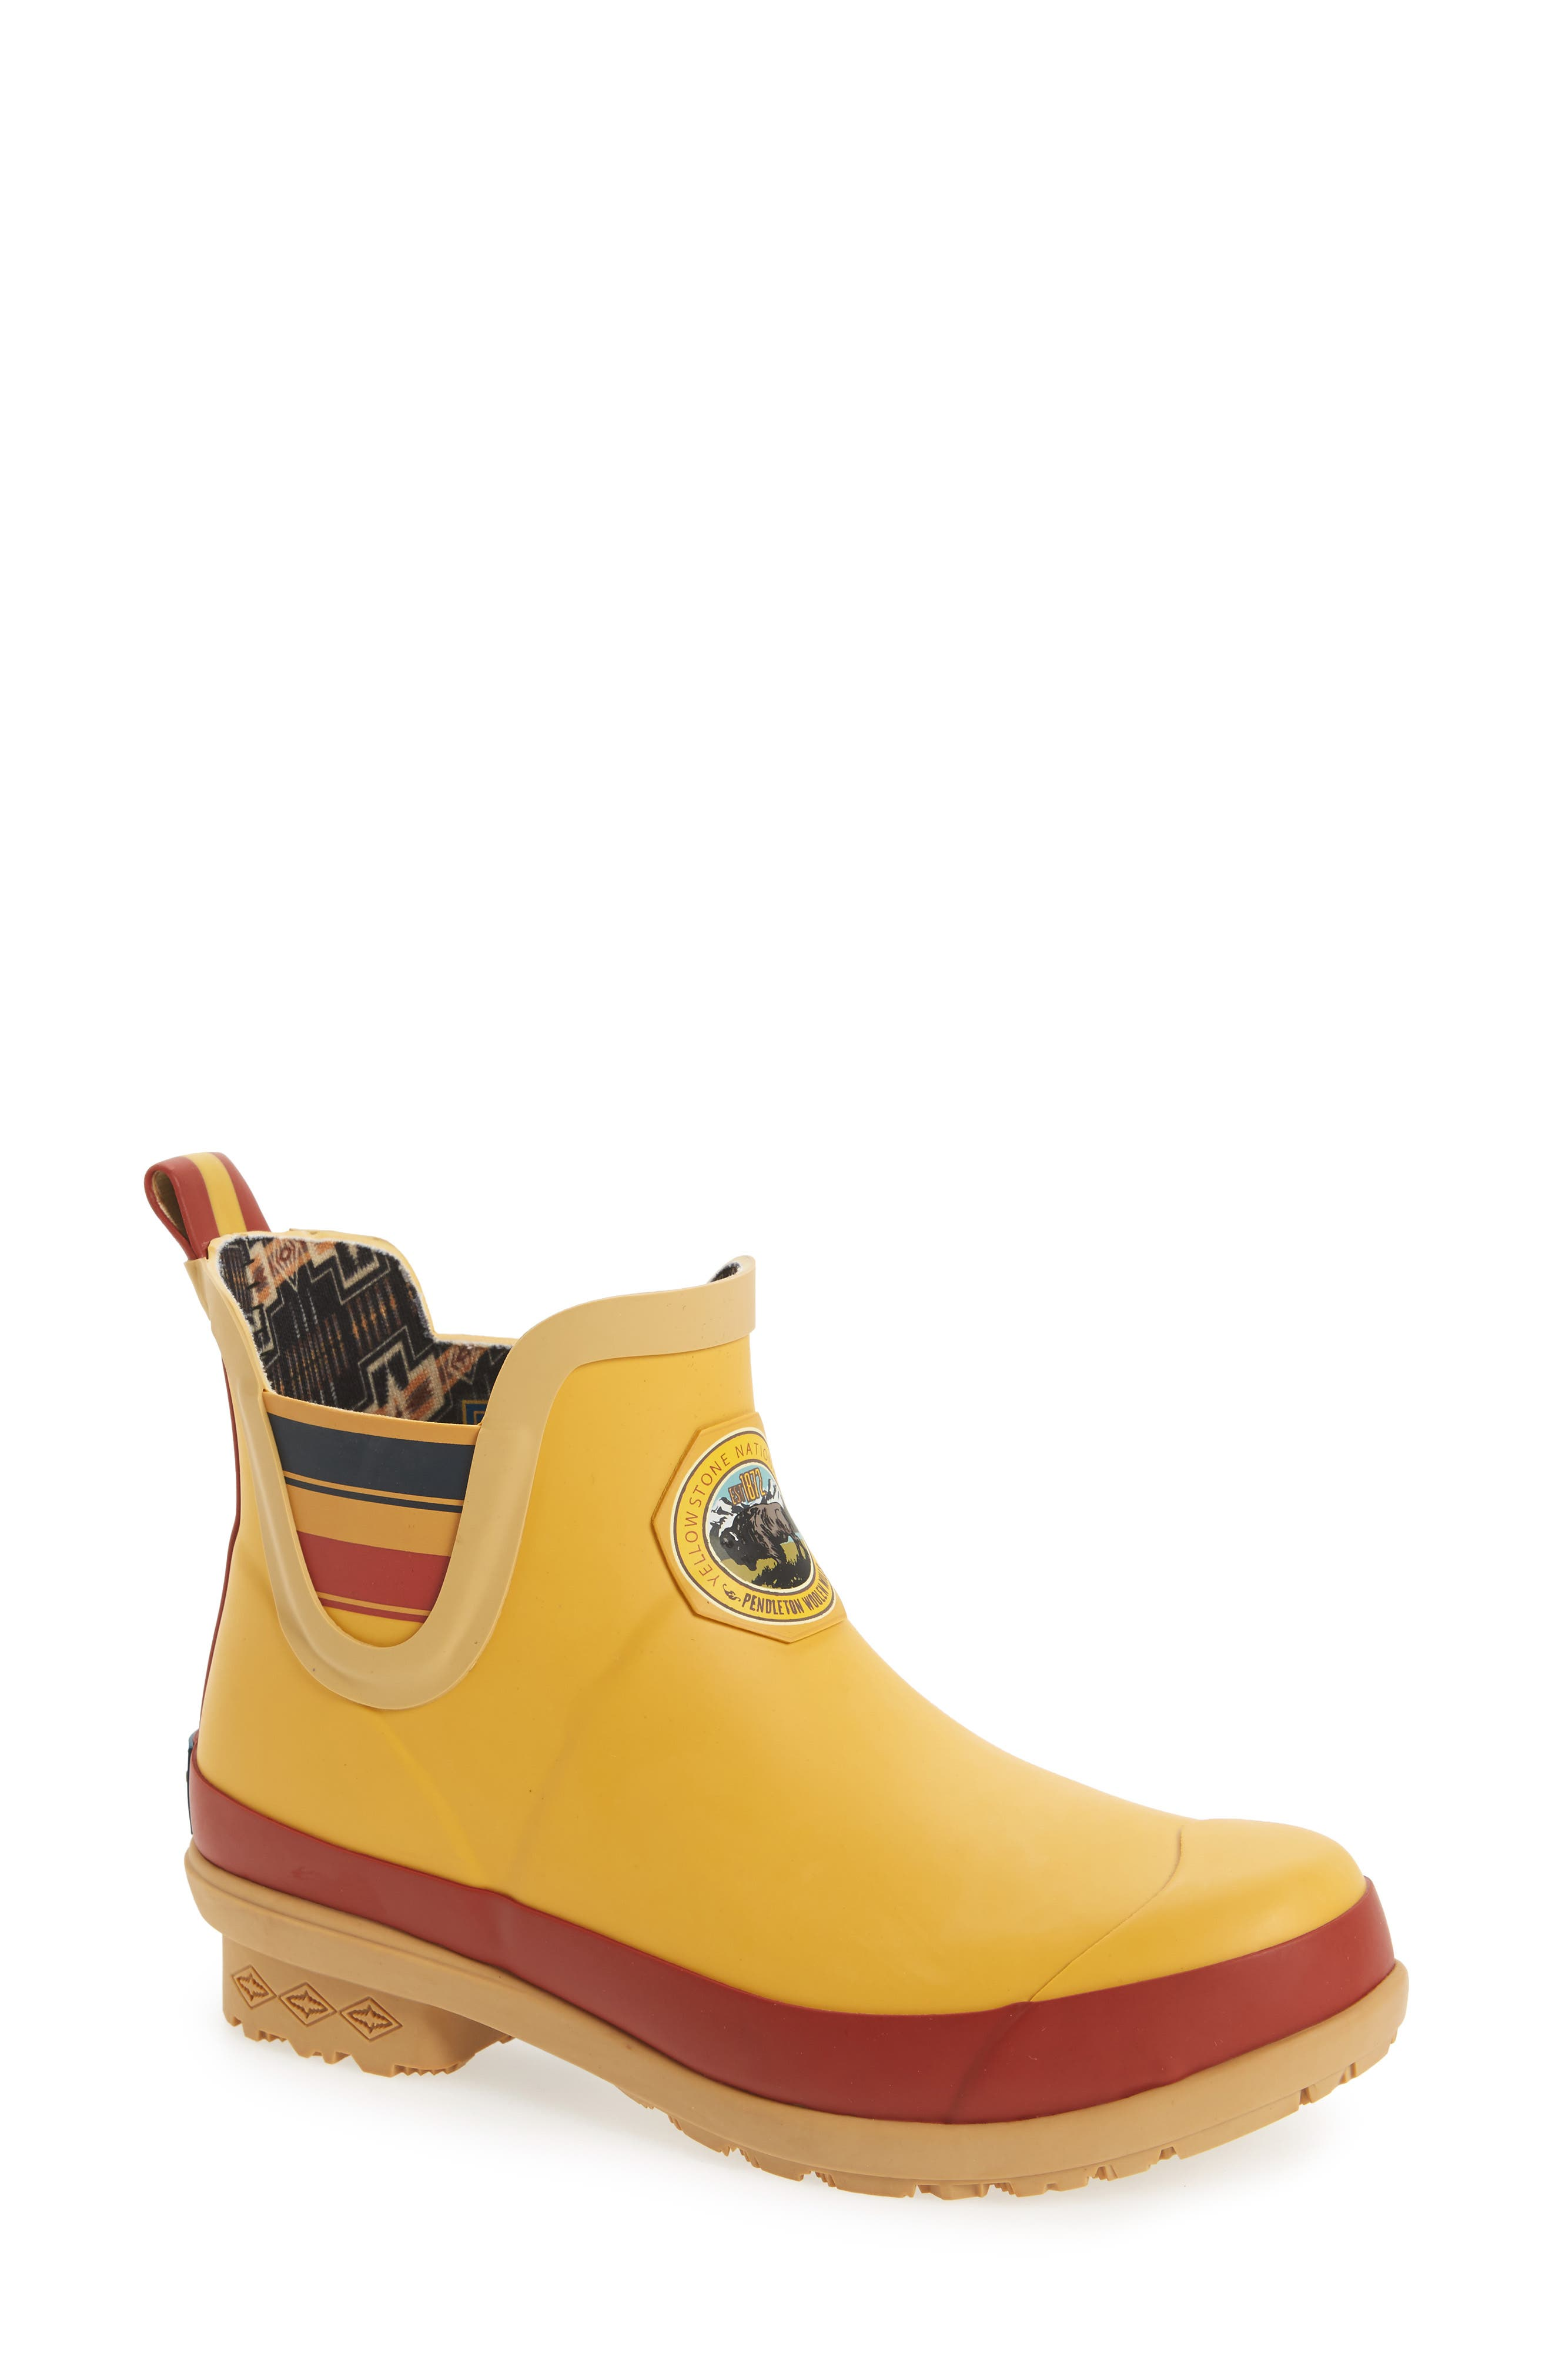 Pendleton Yellowstone National Park Chelsea Rain Boot (Women)